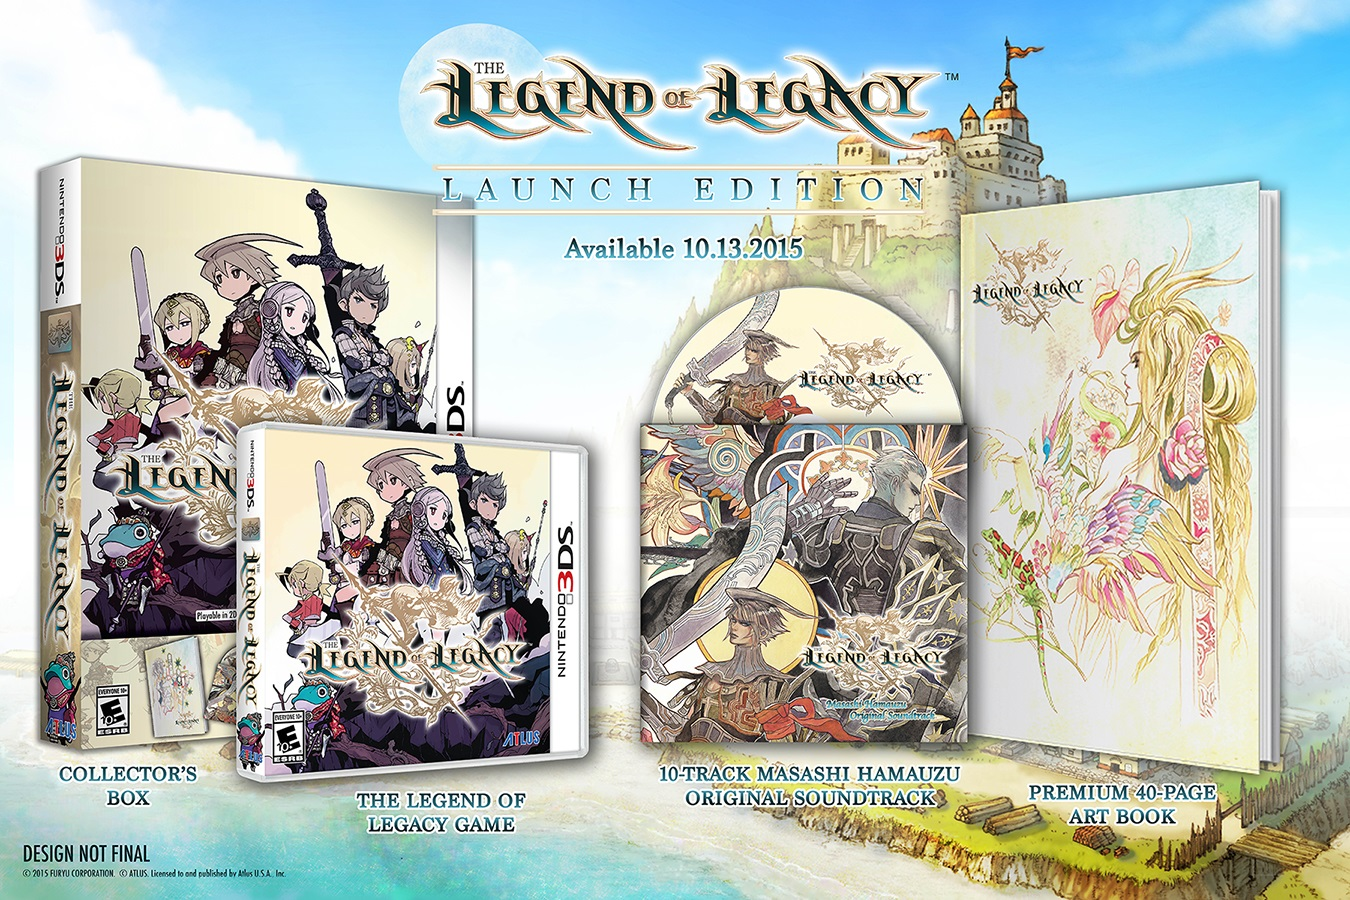 Legend of Legacy Releases on October 13th in North America